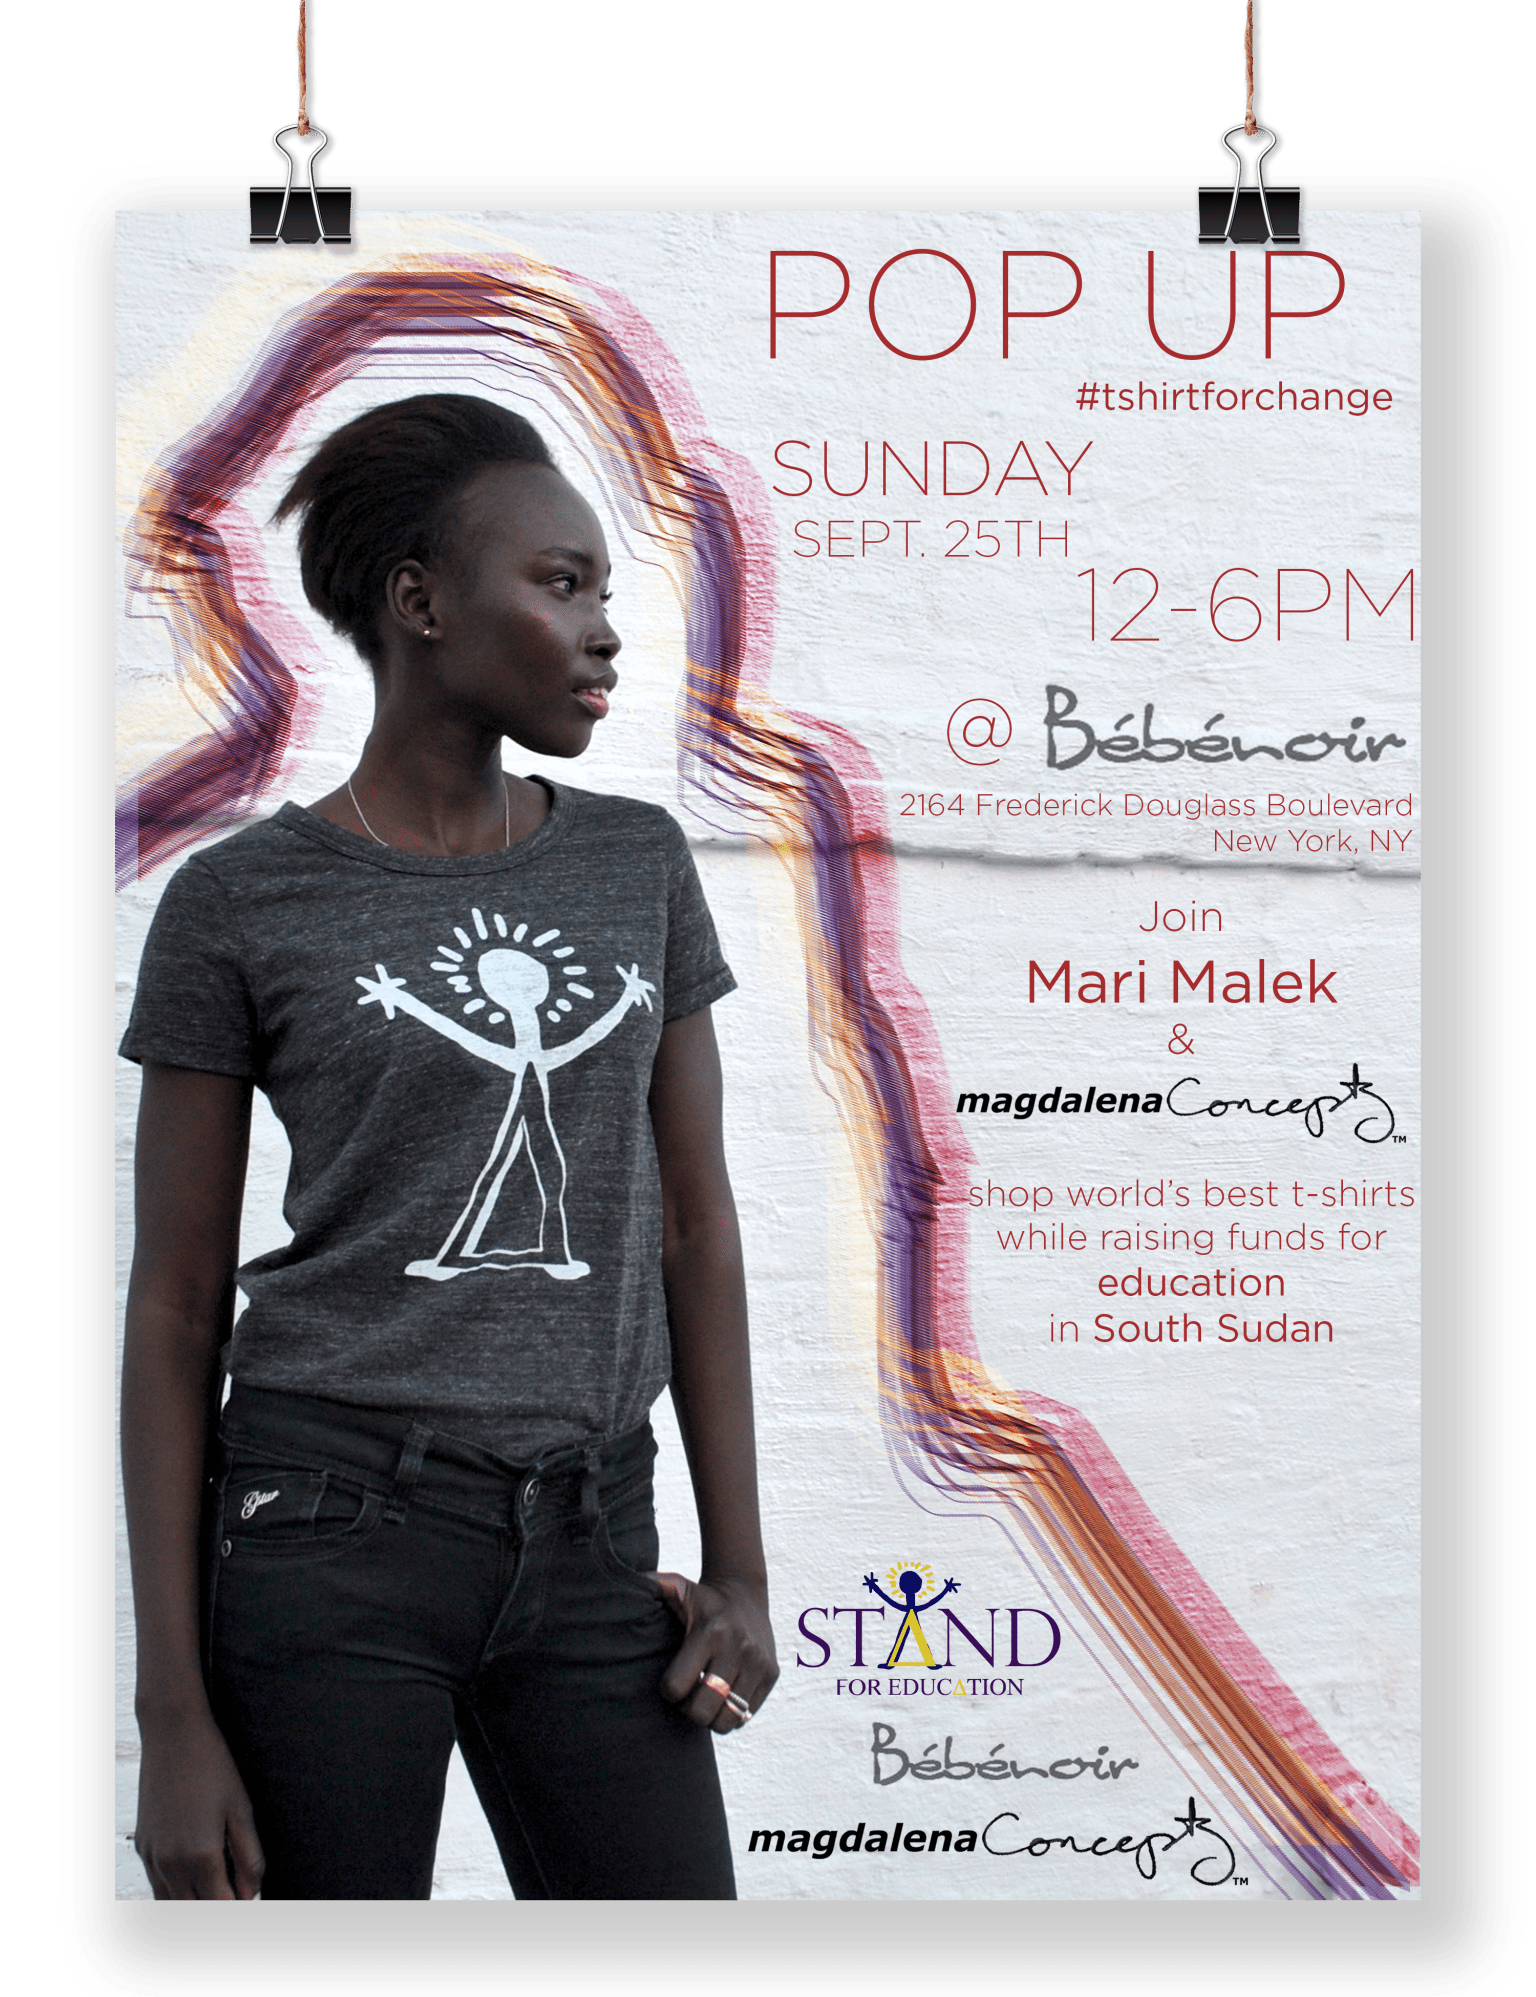 #tshirtforchange Pop-up event poster